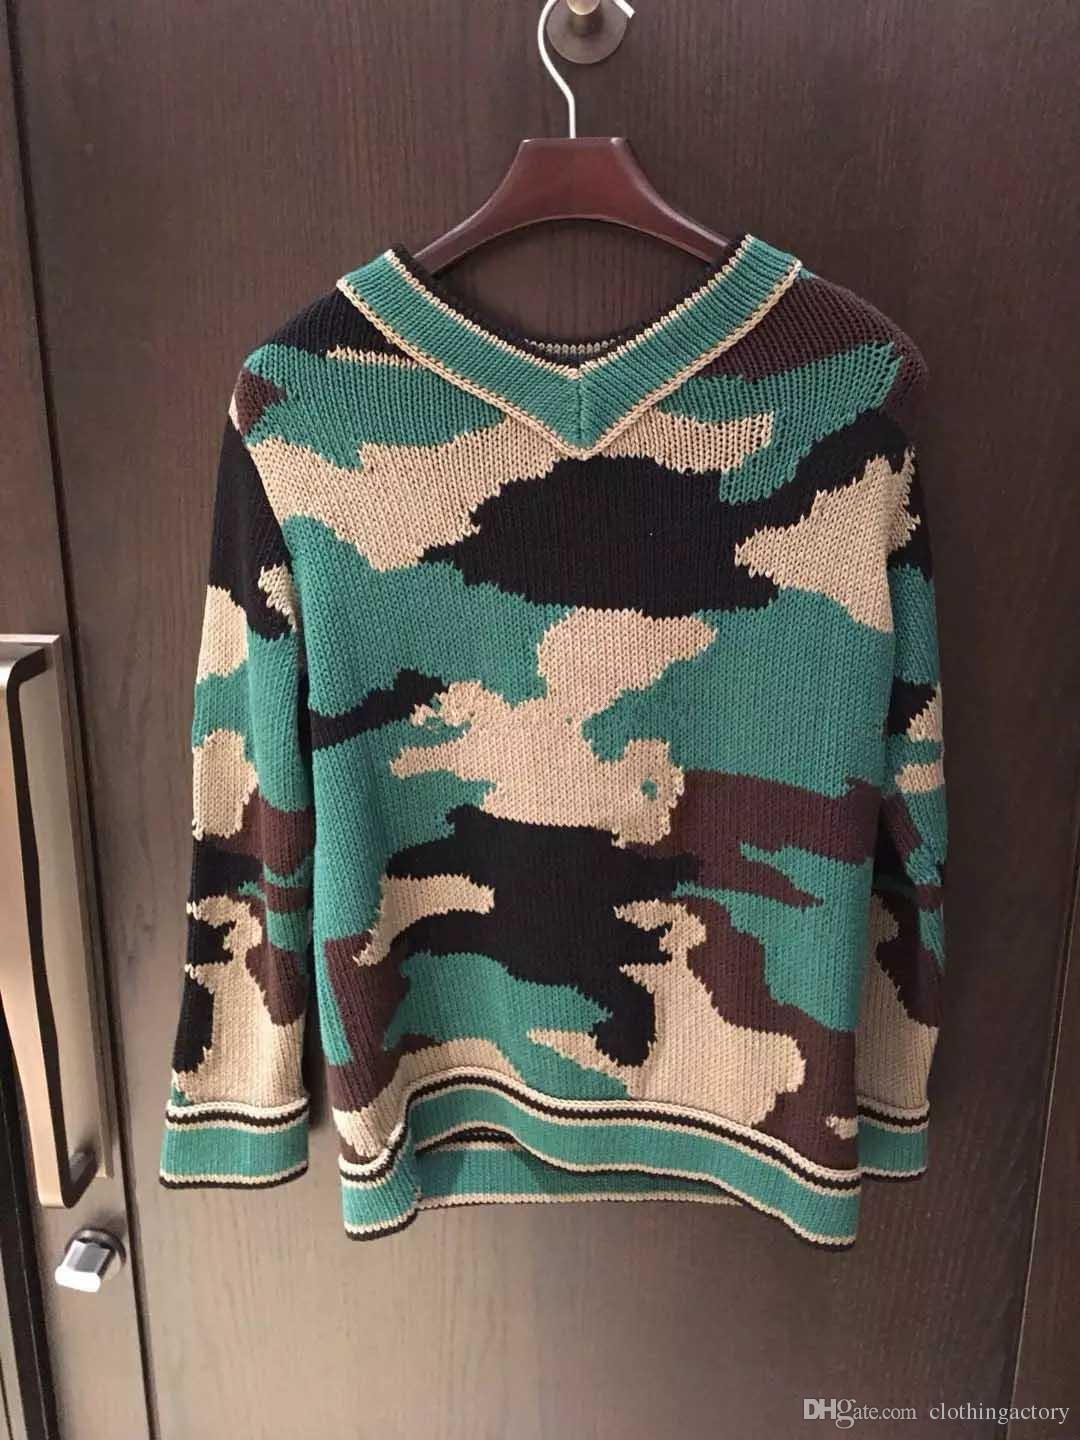 913a21809 2019 Army Green Camouflage Intarsia V Neck Slim Sweater Women 2018 Autumn  New Fashion Knitted Pullover Casual Women Clothes Size S L From  Clothingactory